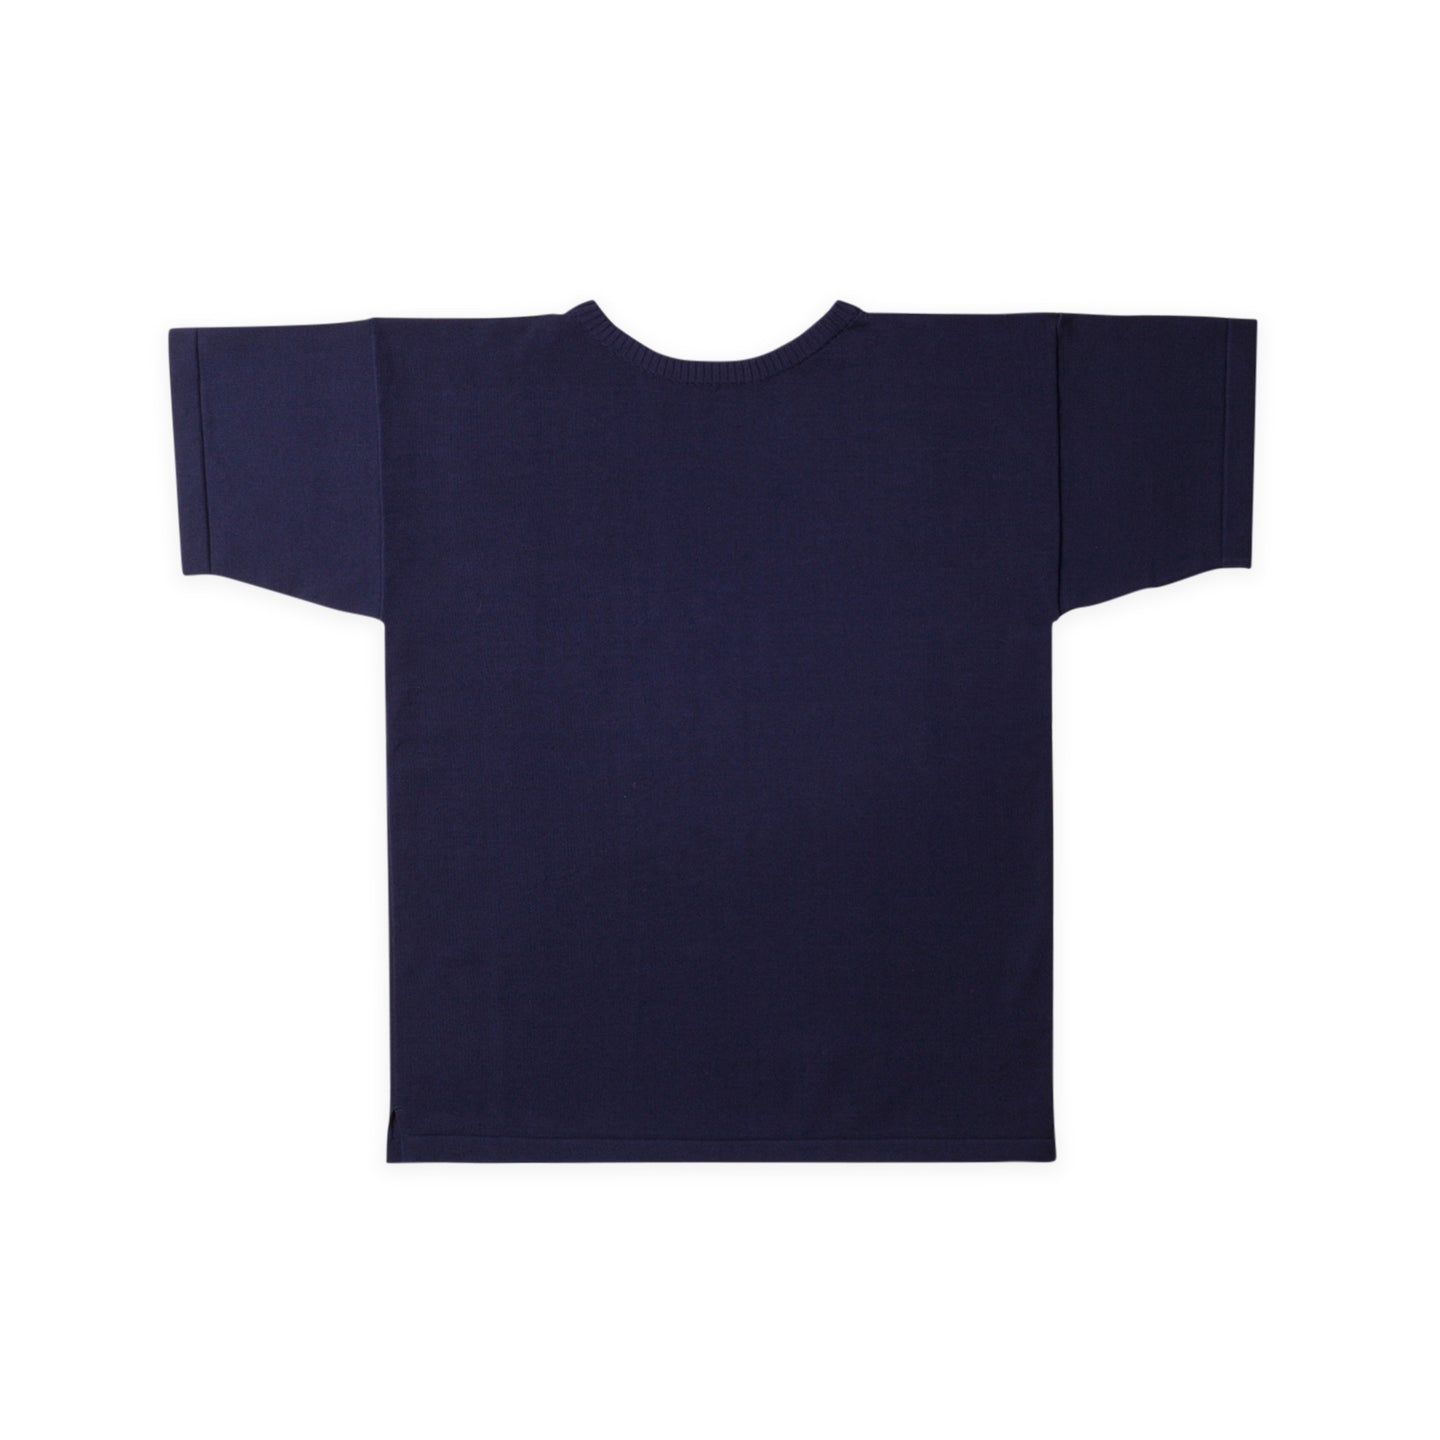 ANDERSEN-ANDERSEN T Shirt - Royal Blue